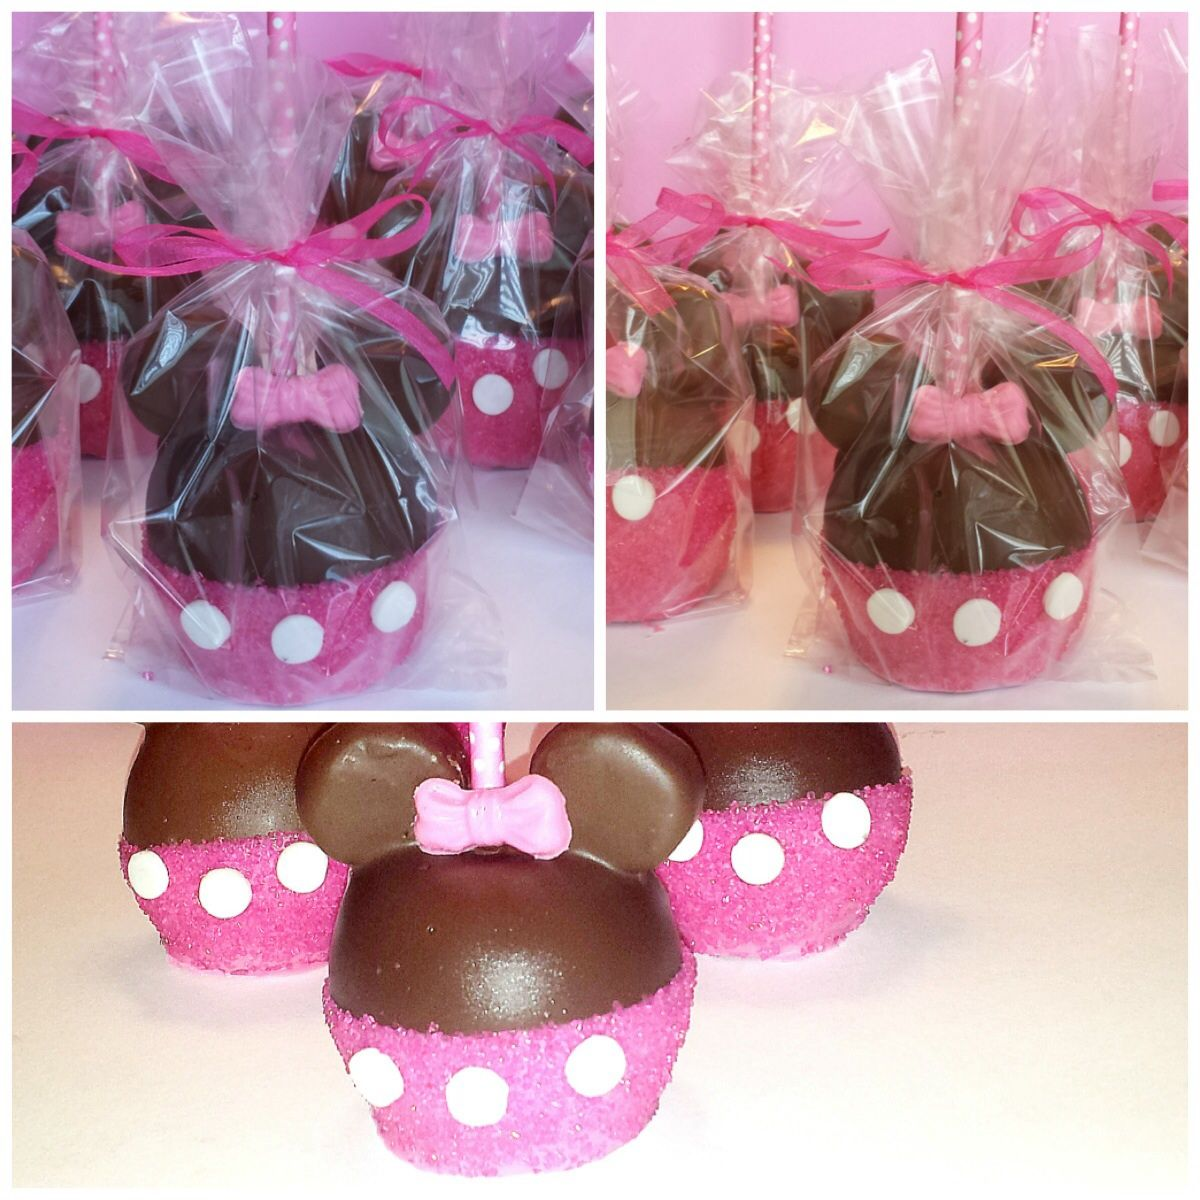 Minnie Mouse Candy Apples | apple | Pinterest | Candy apples, Minnie ...